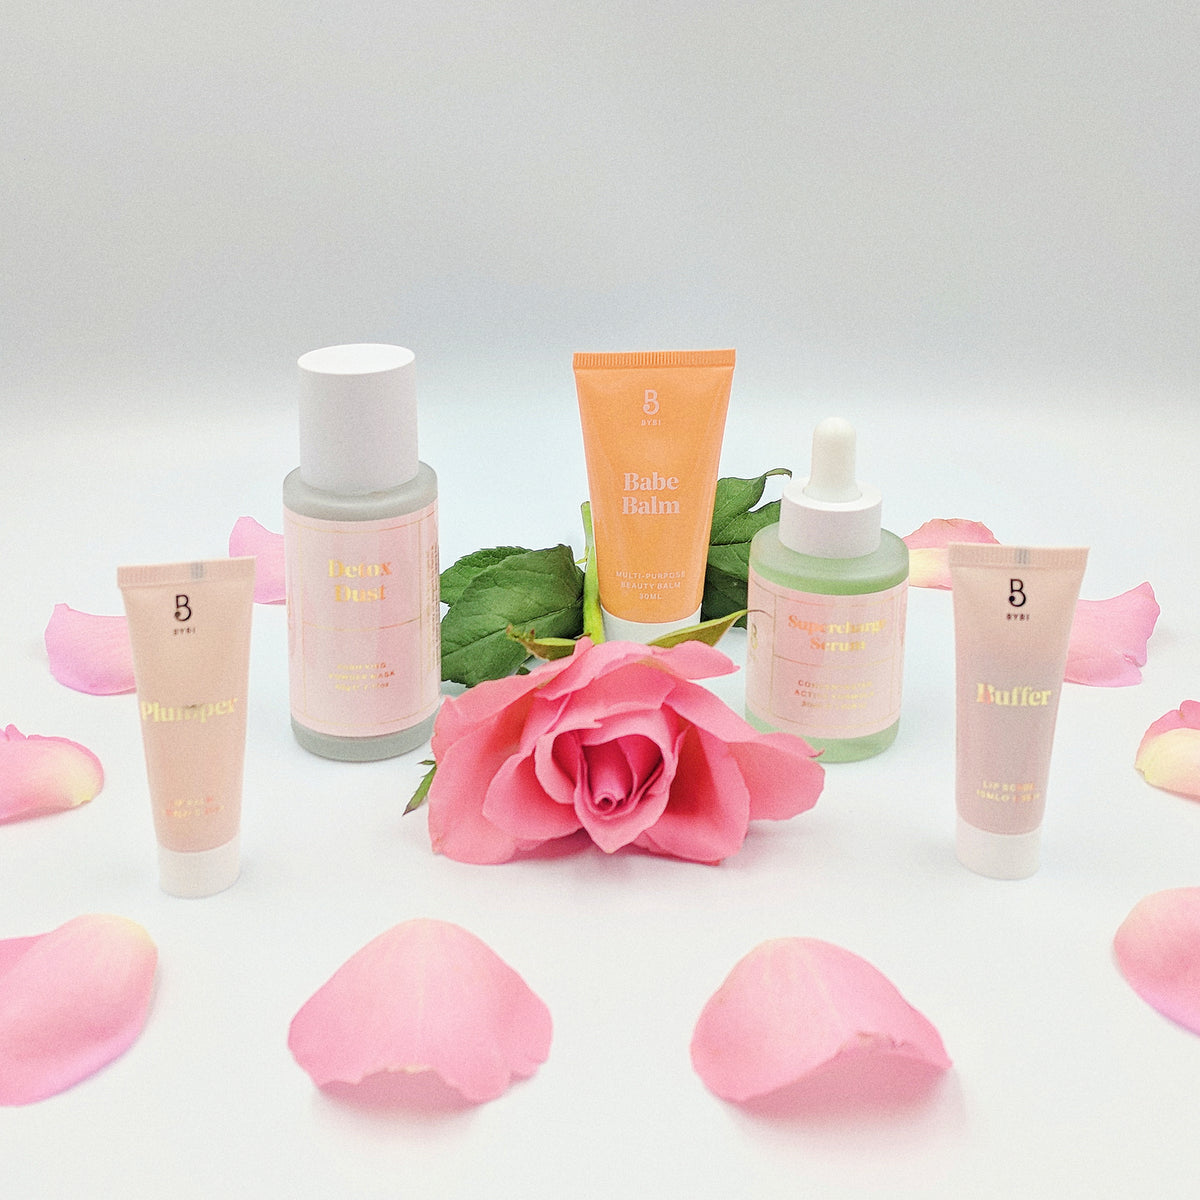 BYBI Beauty natural skincare